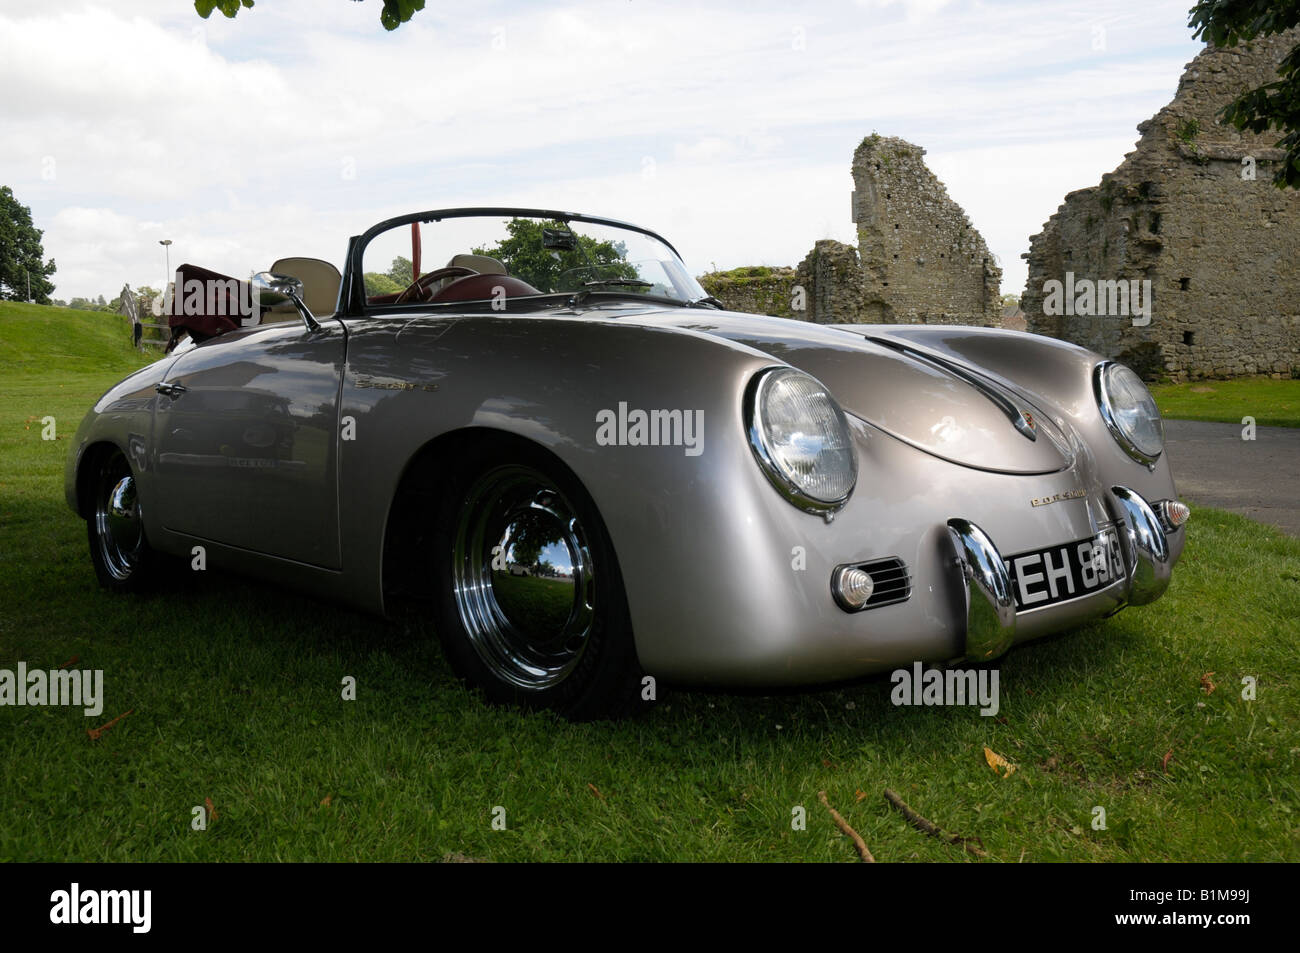 Chesil Speedster 2 Kit Car Loose Replica Of A Porsche 356 With Stock Photo Royalty Free Image